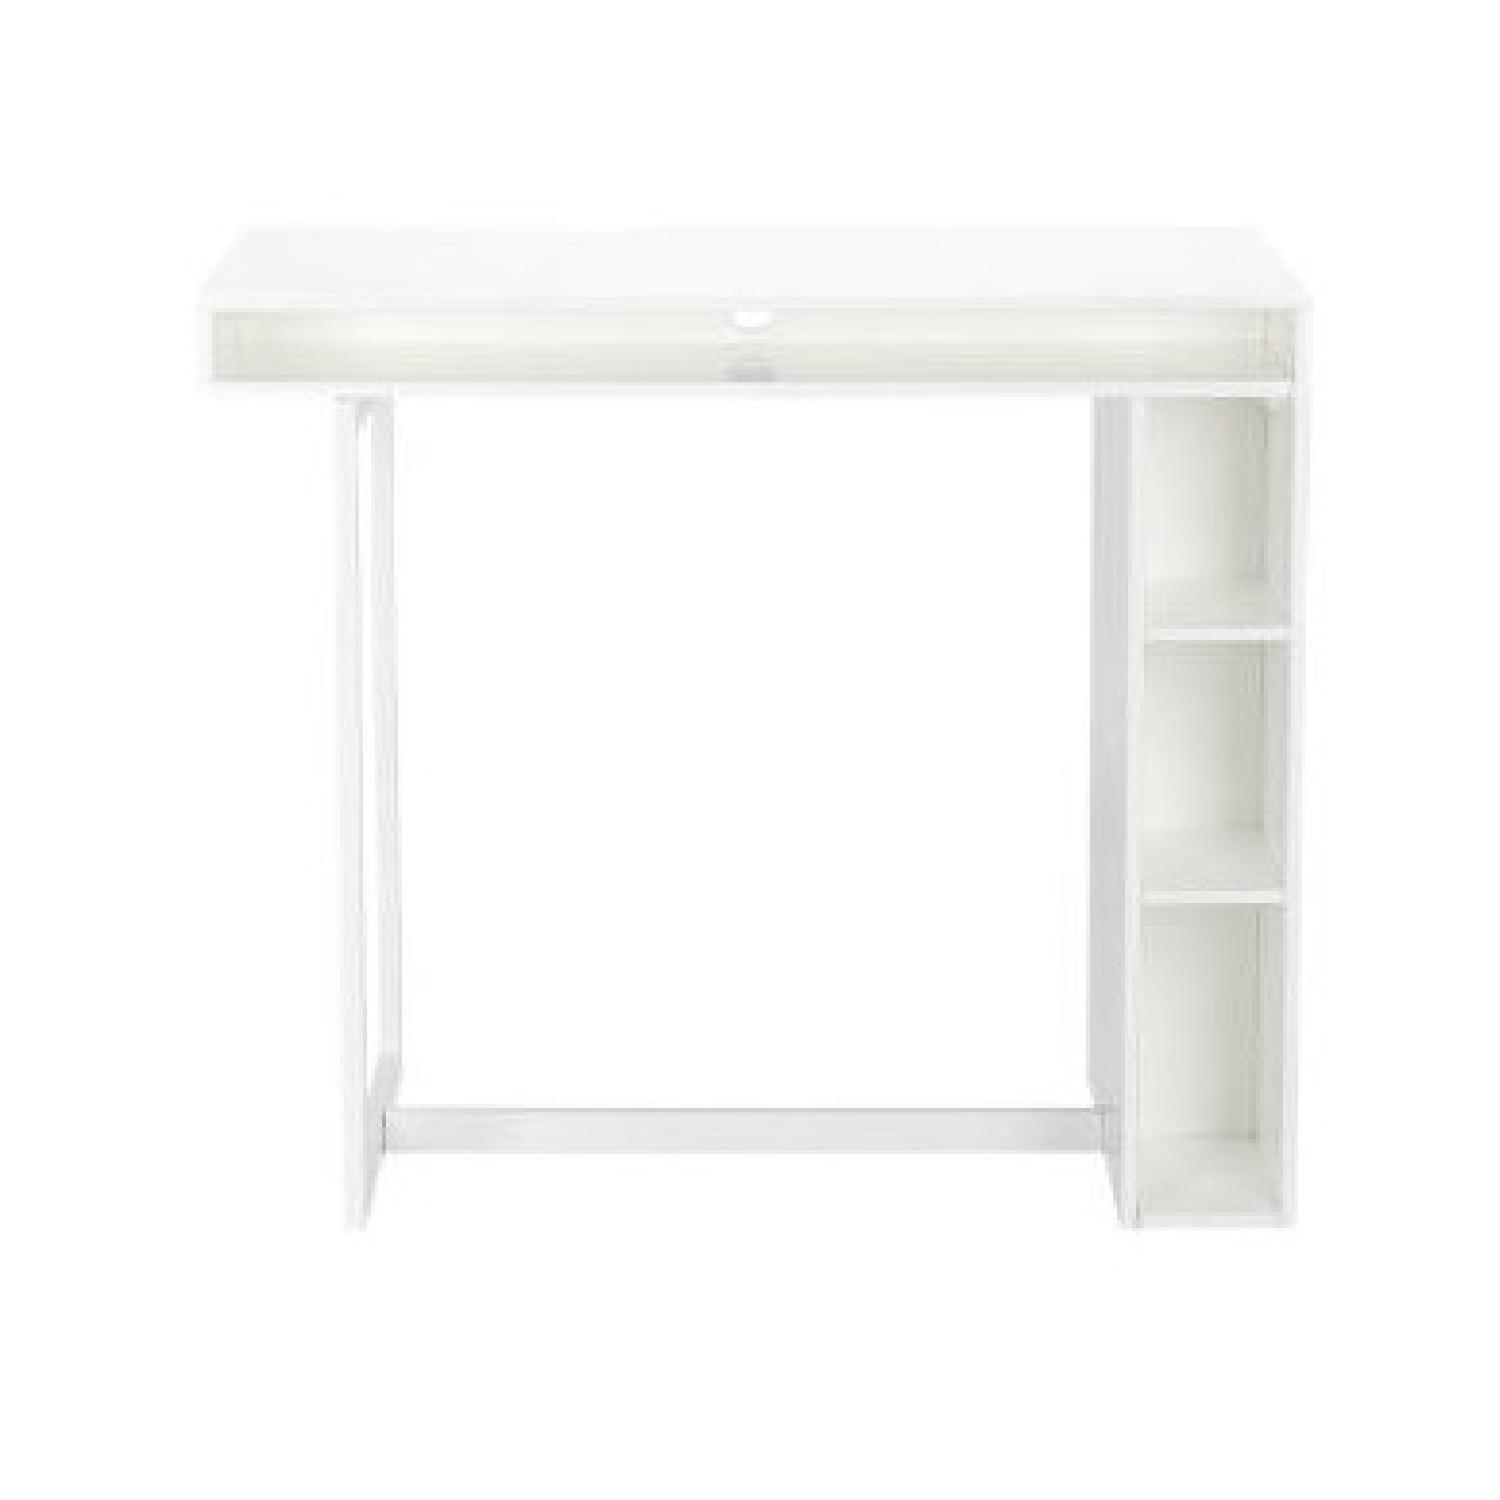 CB2 Public High Dining Table / Standing Desk - image-5